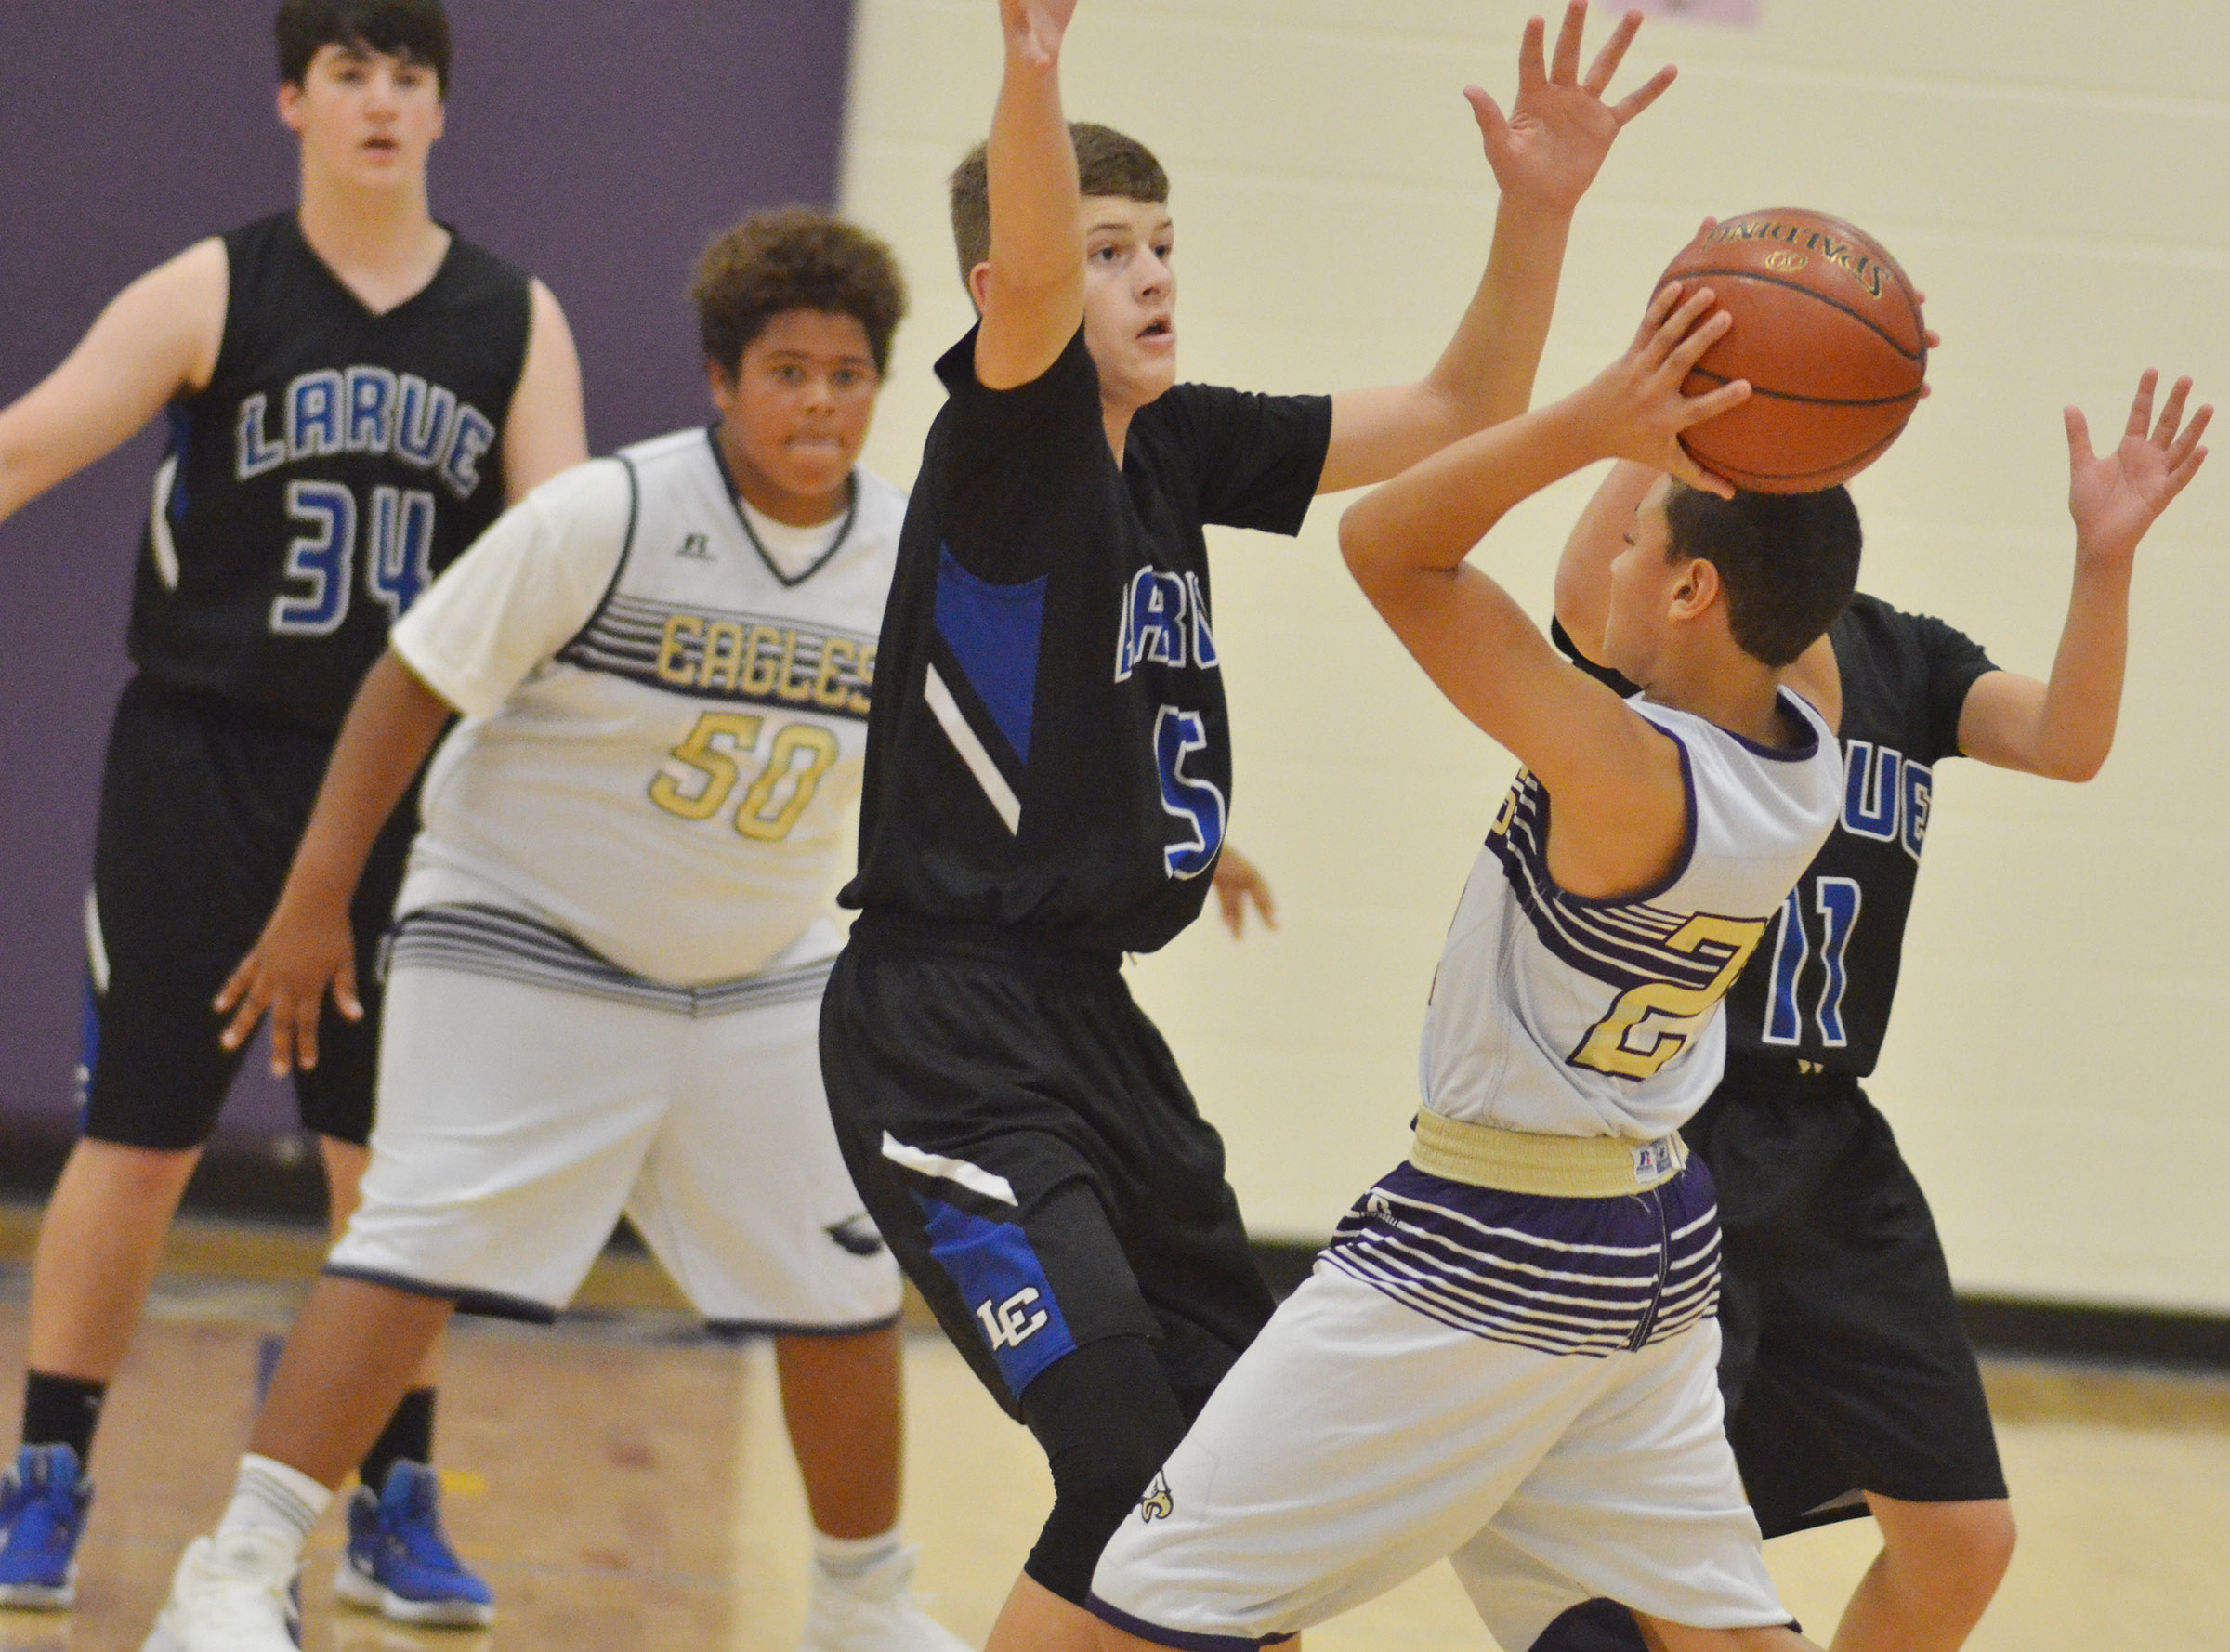 CMS eighth-grader Brice Spaw looks to pass.